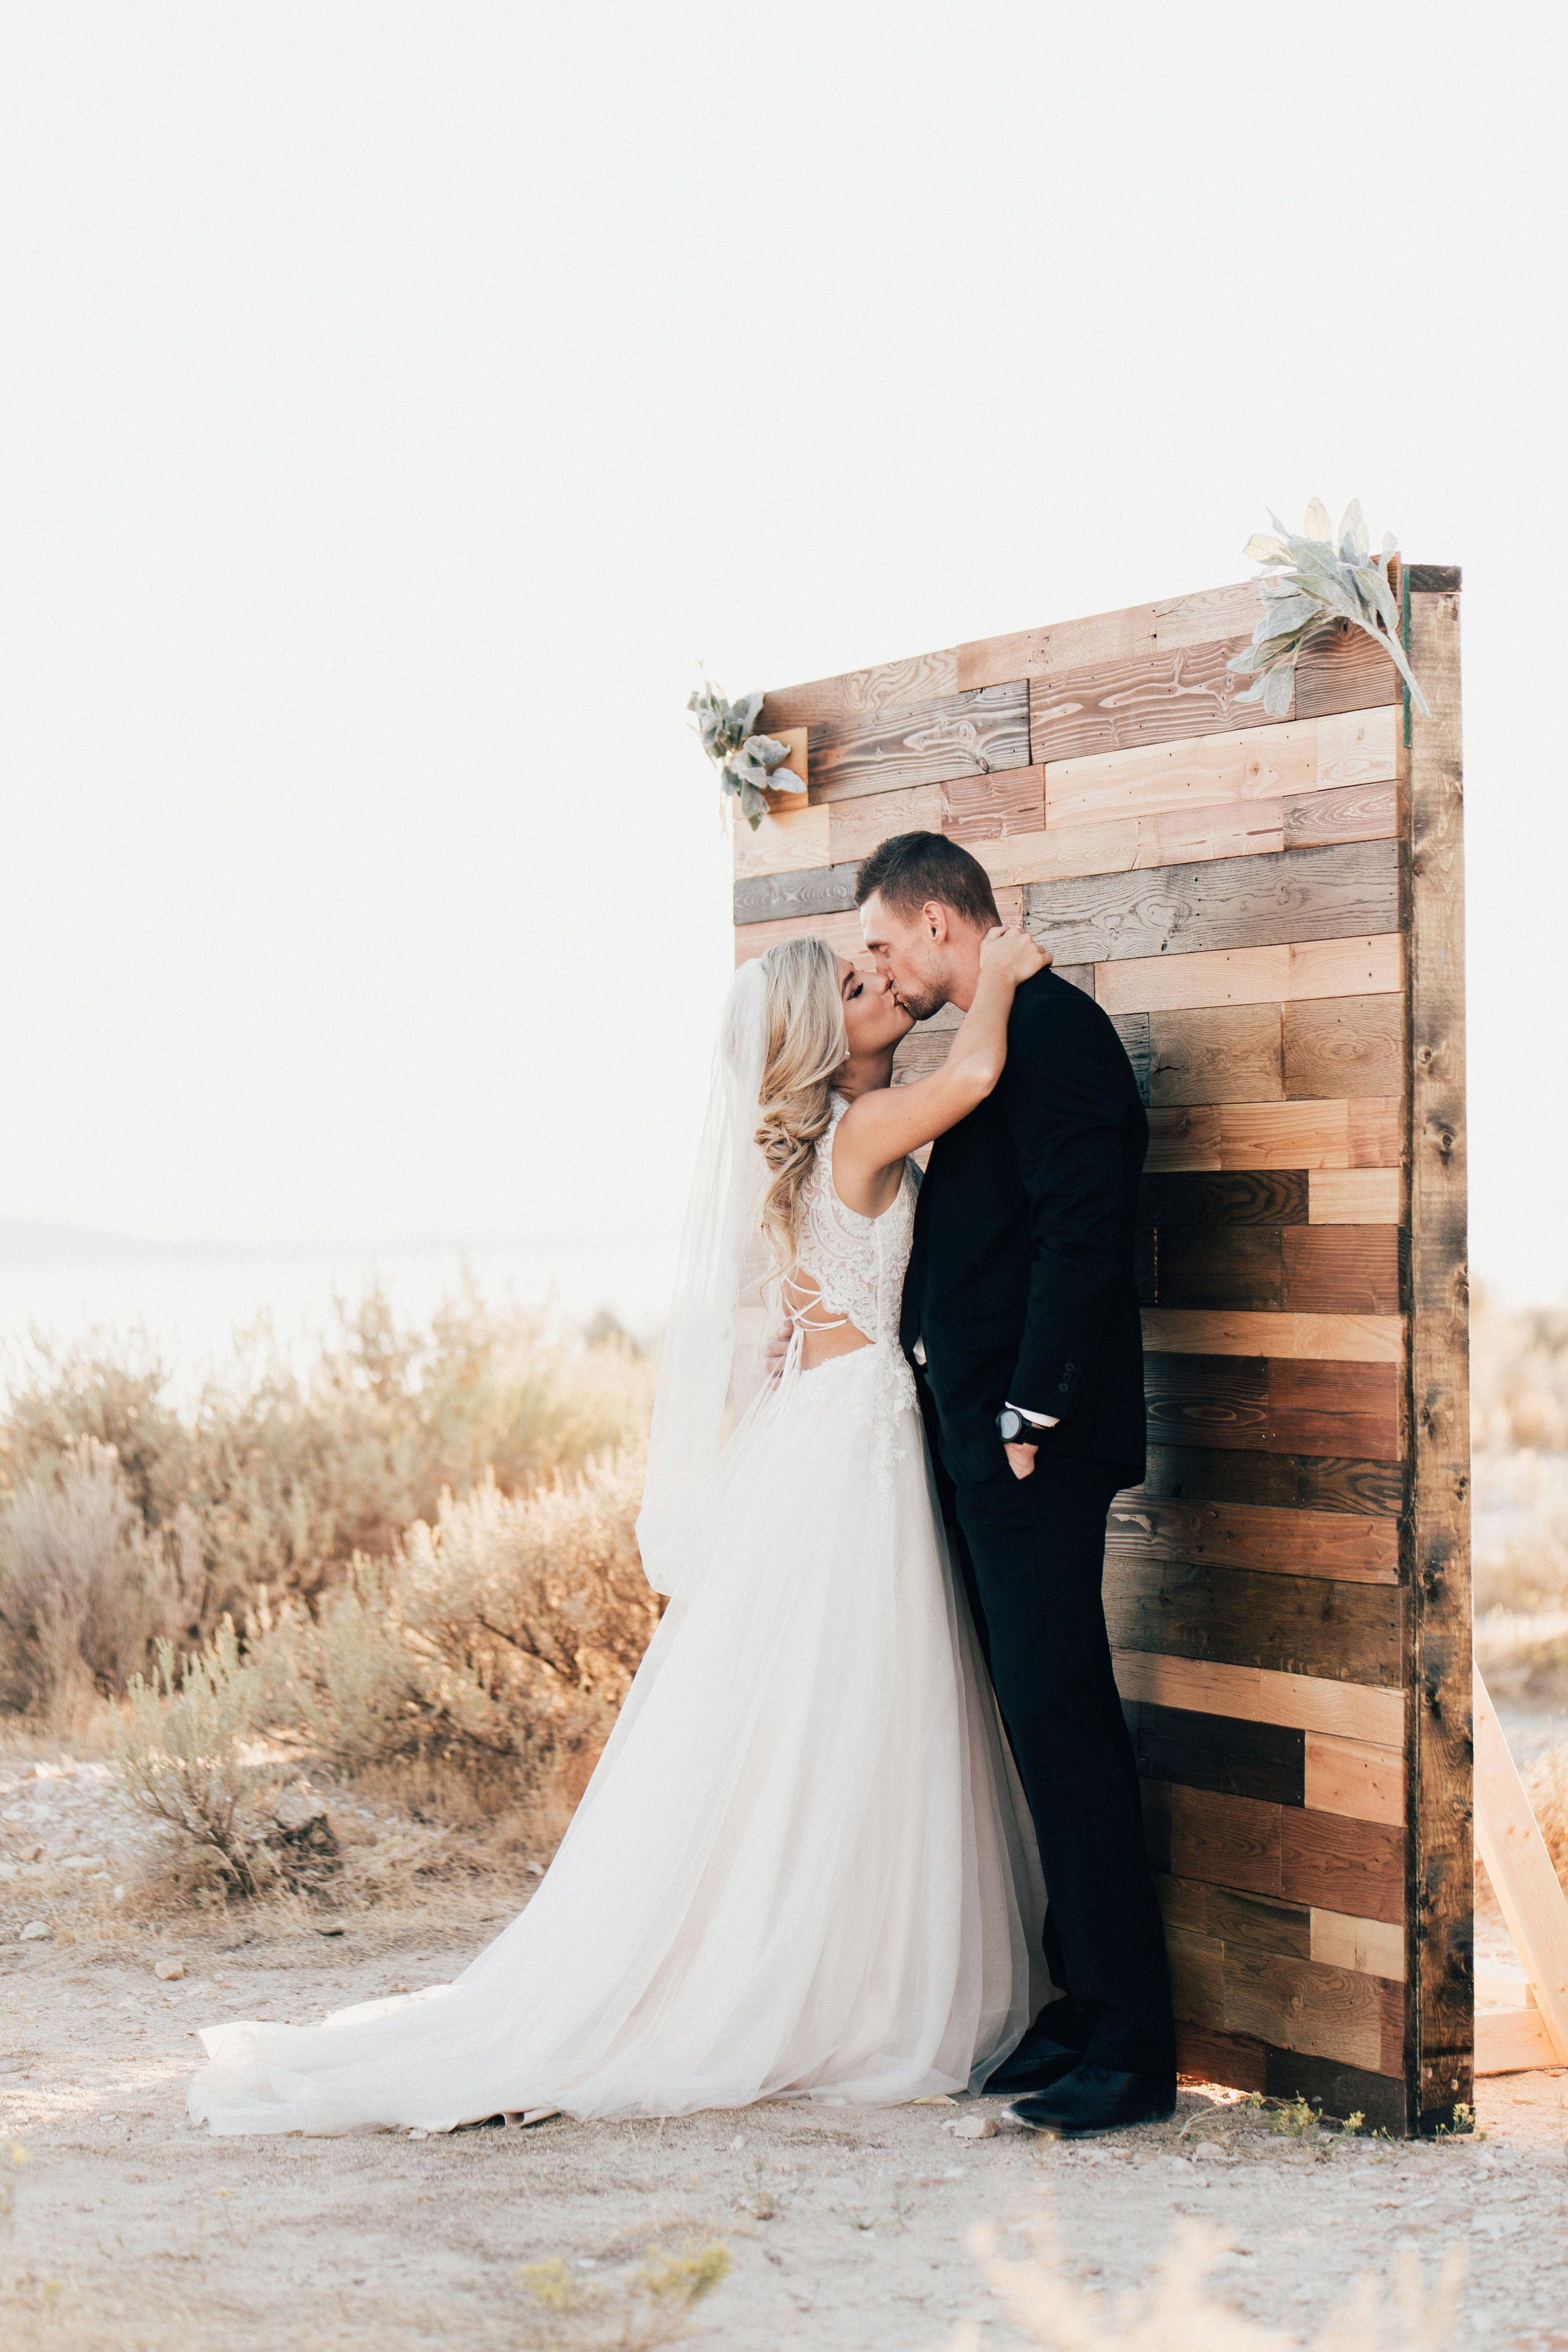 True Love S Kiss Looking For Your Dream Wedding Dress In Utah Set Up An Appointment With Bōda Bridal To Make Your W Dream Wedding Custom Bridal Wedding Gowns